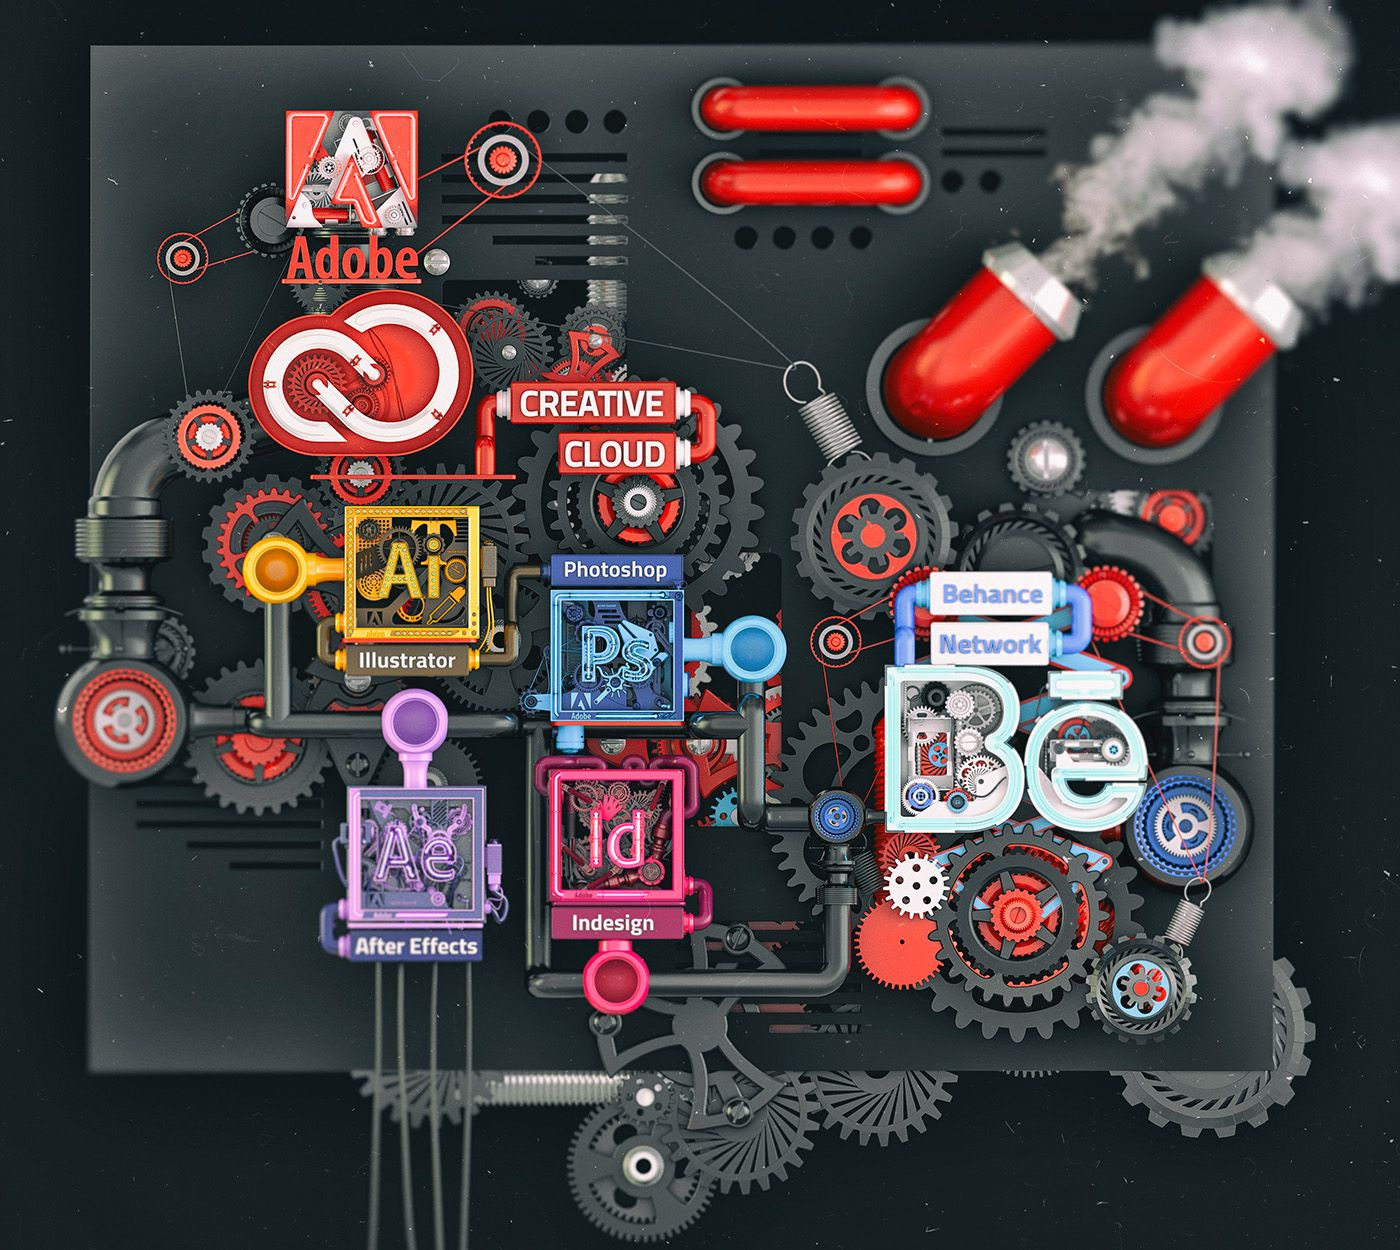 Creative Cloud Gives You The World S Best Creative Tools After My Adobe Neo Cube Series I Wanted To Combine Creative Cloud Adobe Creative Cloud Adobe Creative